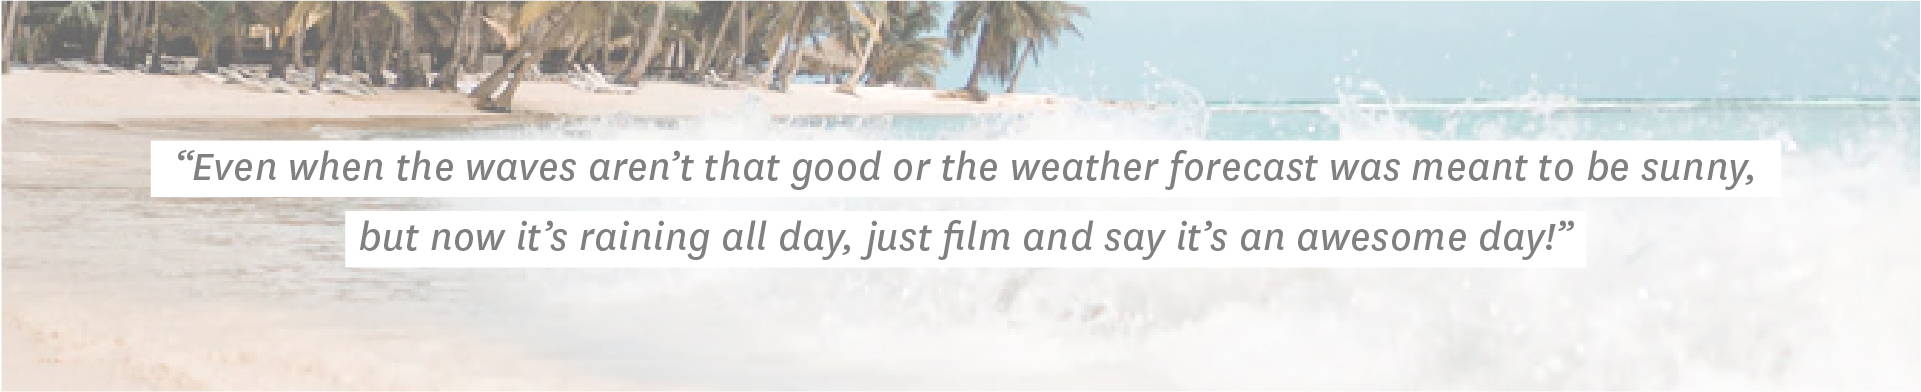 Even when the waves aren't that good or the weather forecast was meant to be sunny, but now it's raining all day, just film and say it's an awesome day!